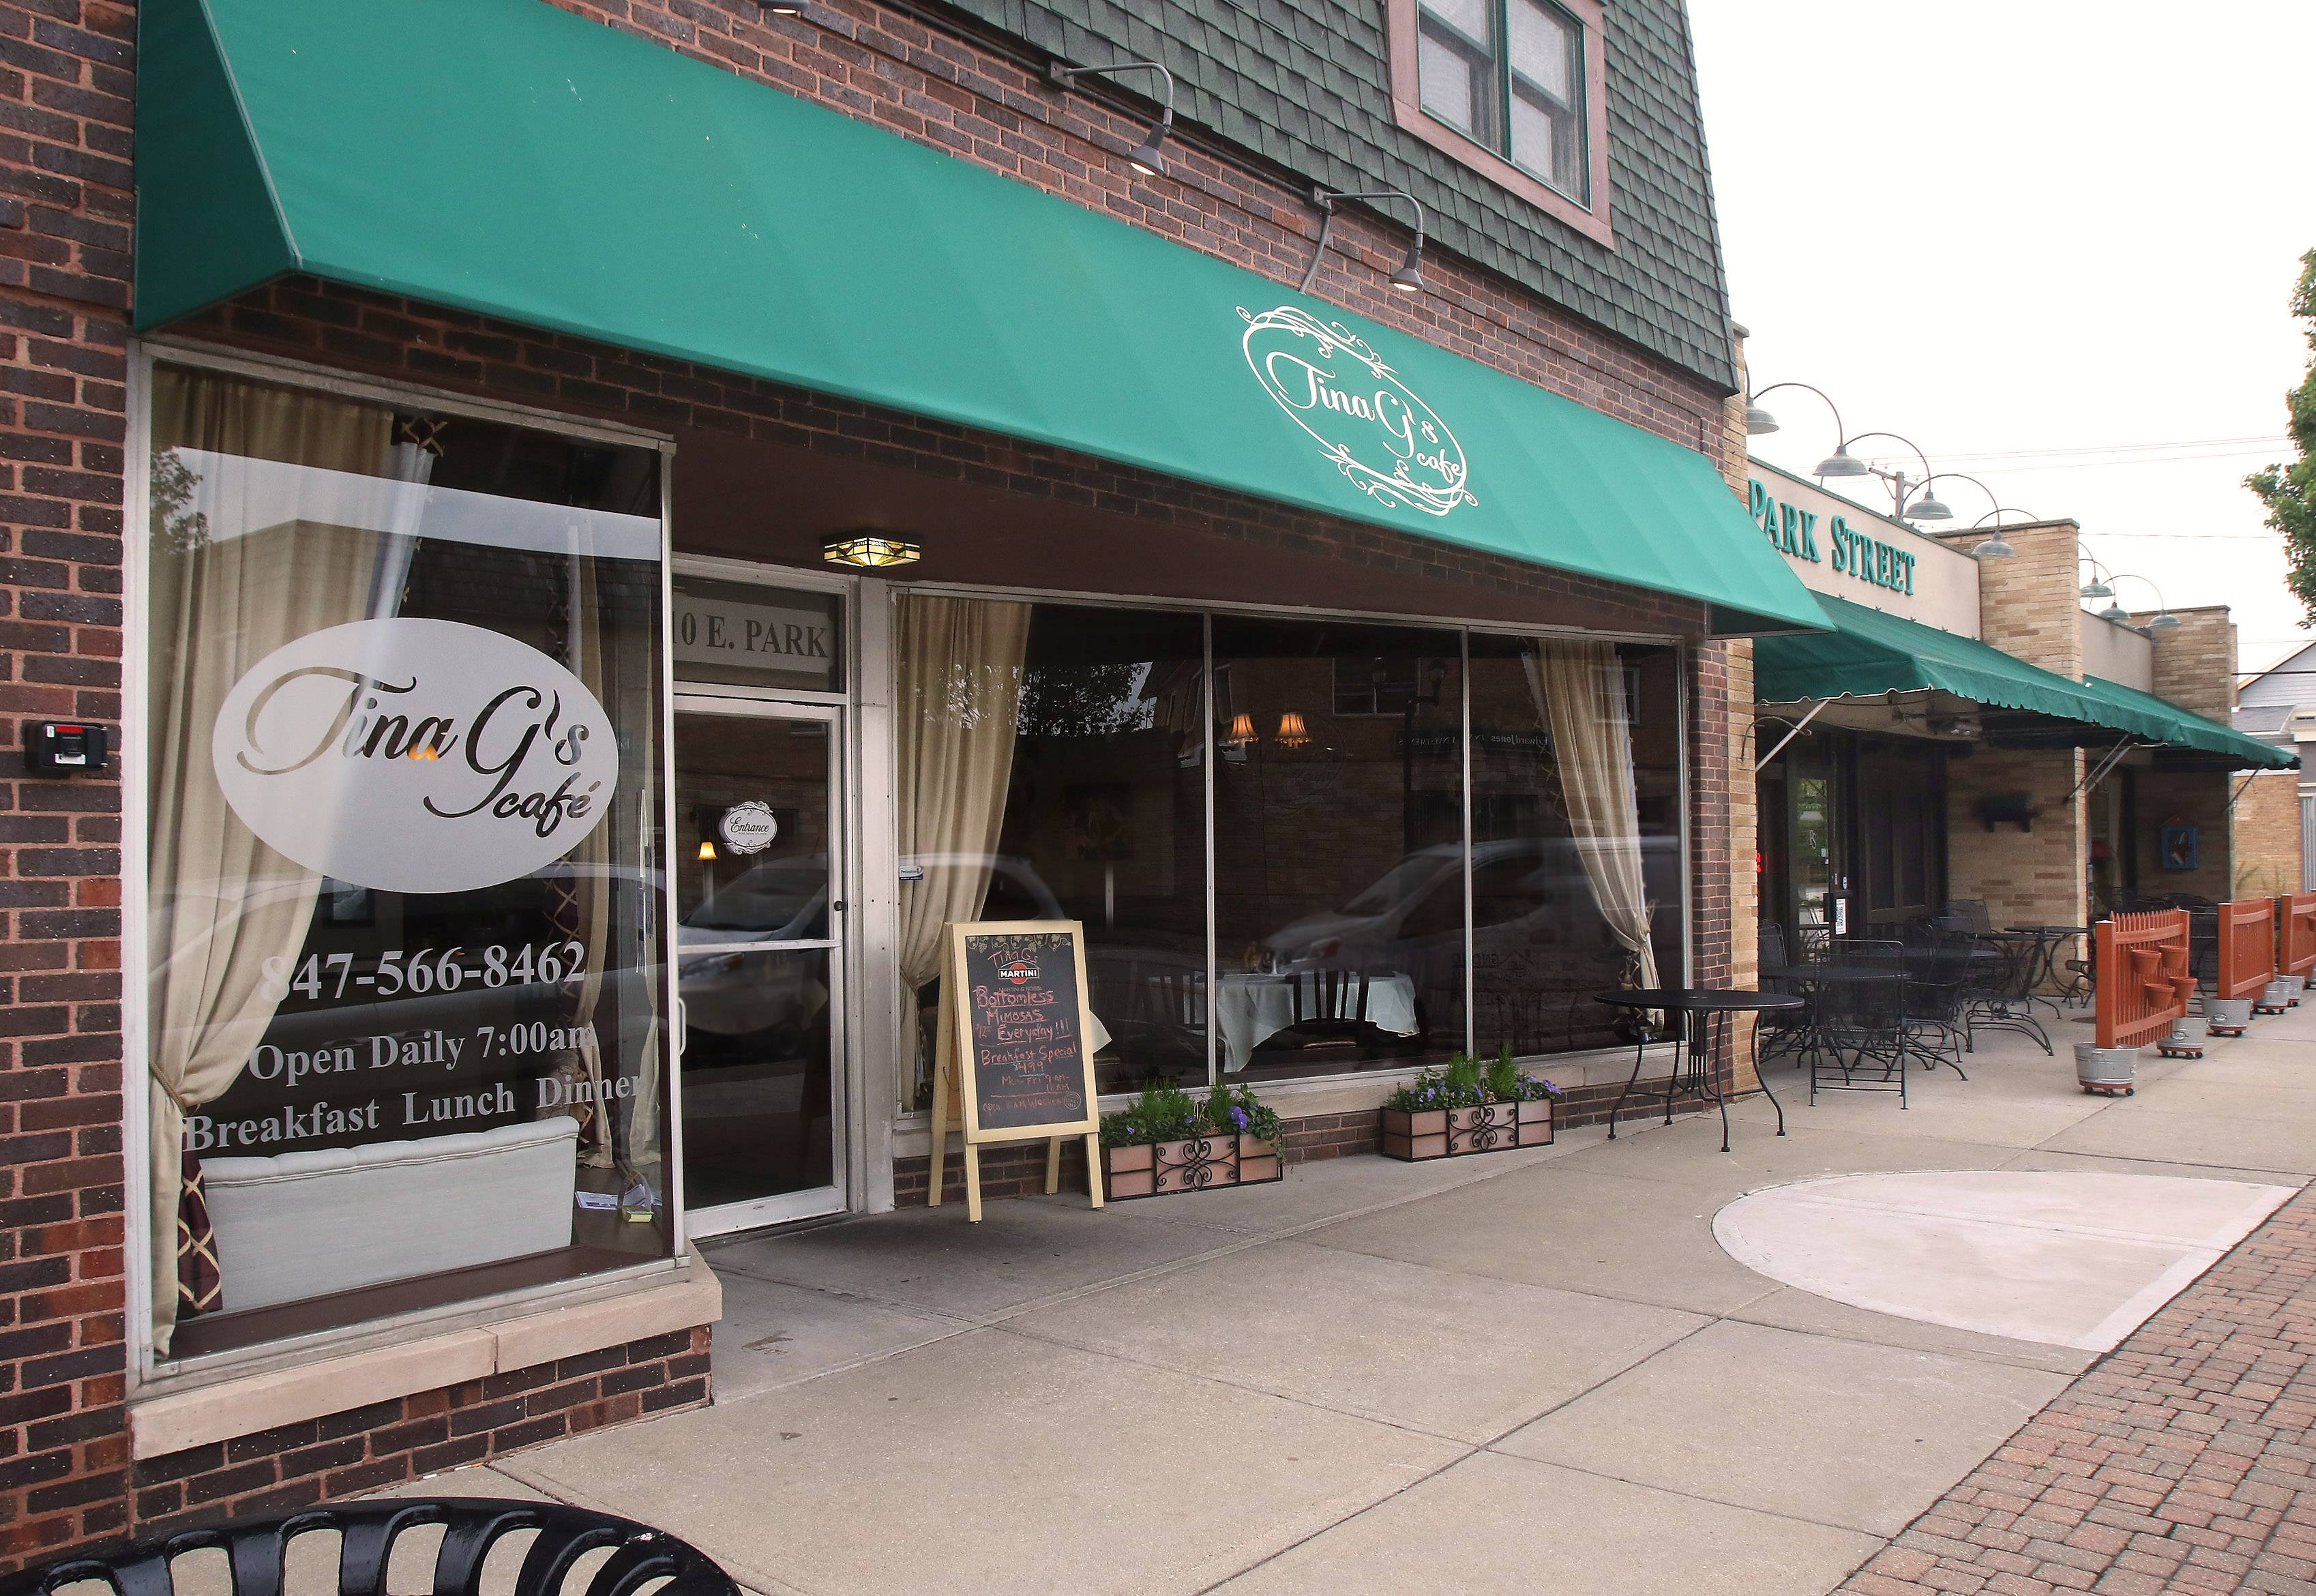 Tina G's in Mundelein opening outdoor dining section